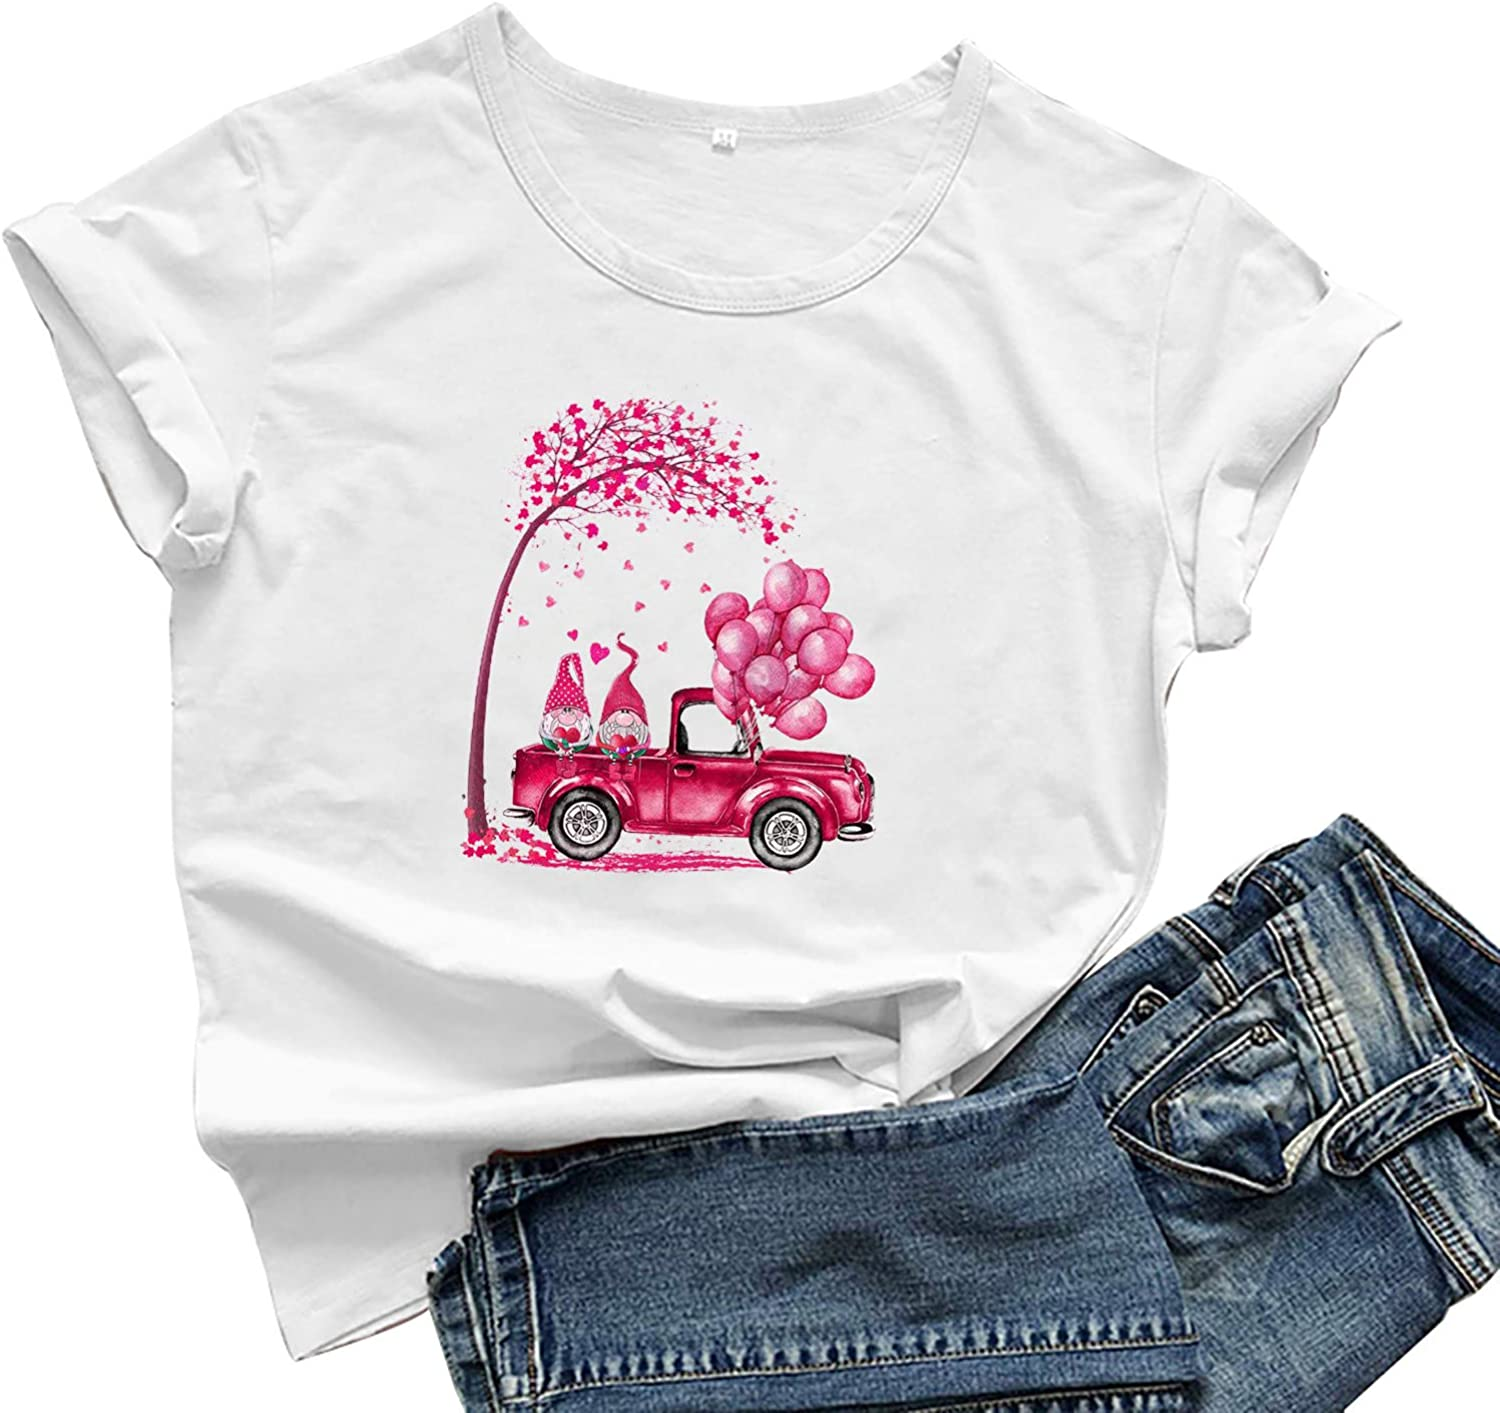 FABIURT T Shirts for Women, Womens Valentine's Day Funny Graphic Printed T-Shirt Short Sleeve Casual Blouse Tunic Tops